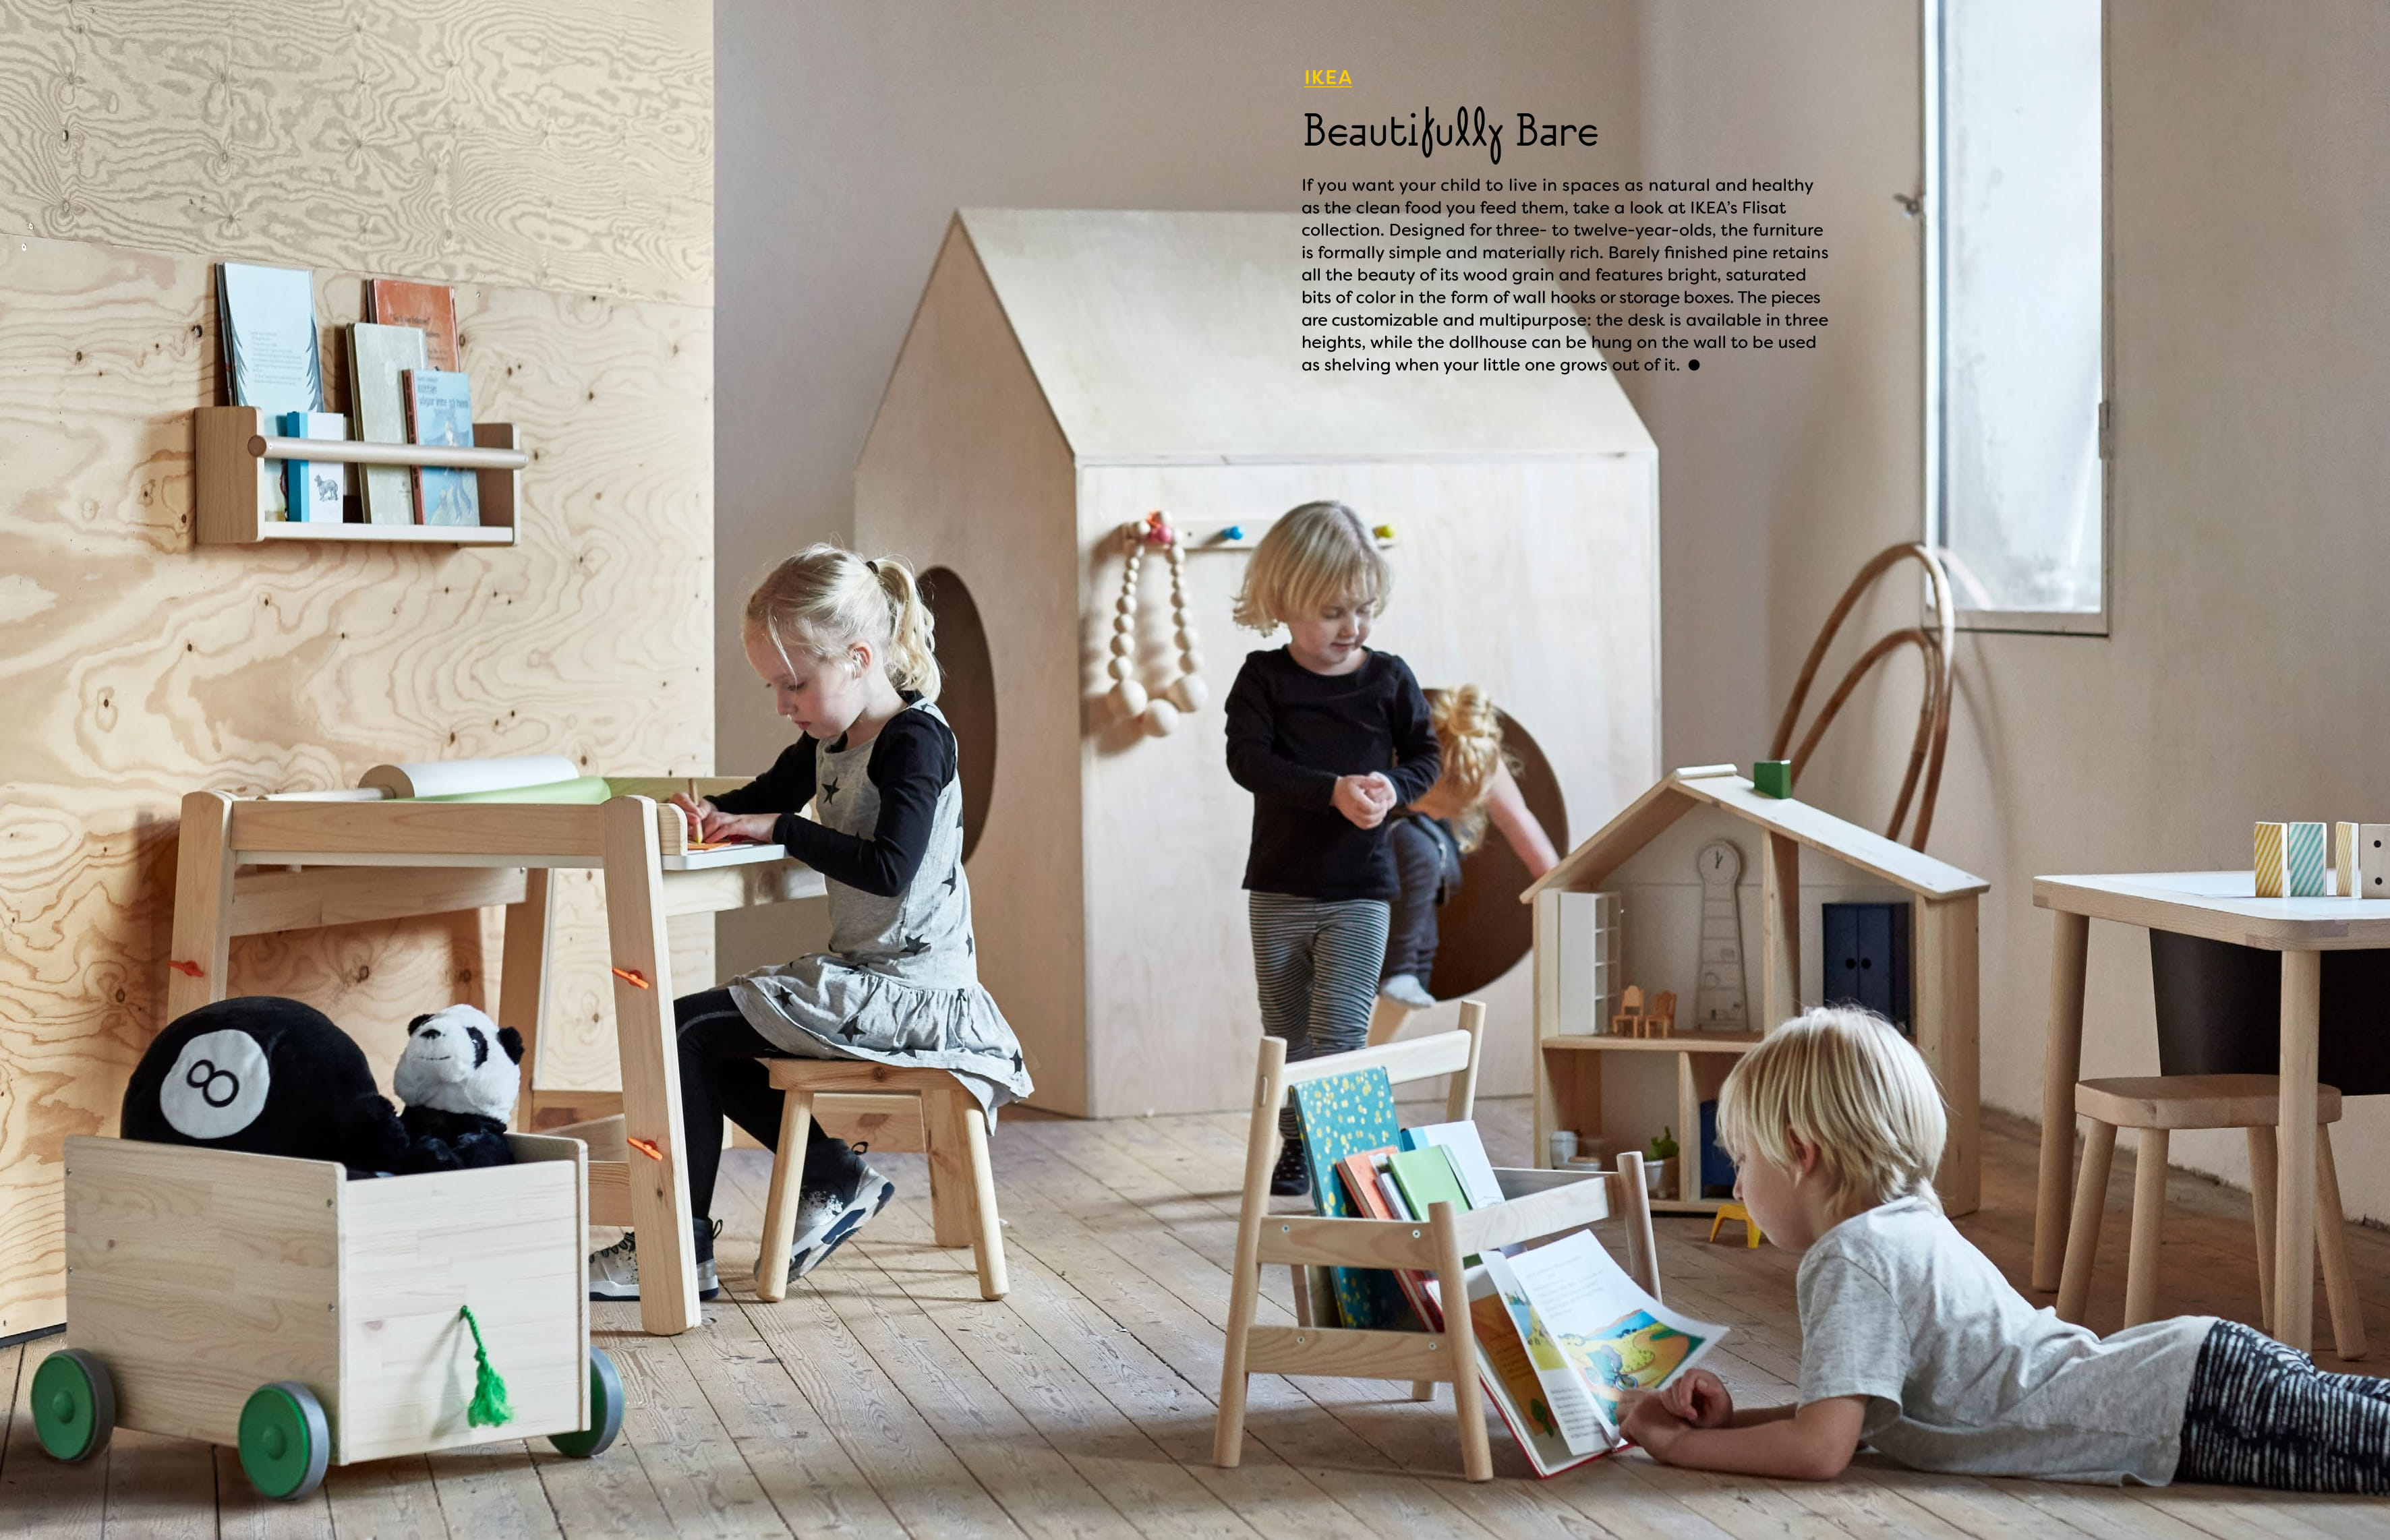 From Little Big Rooms copyright Gestalten 2018